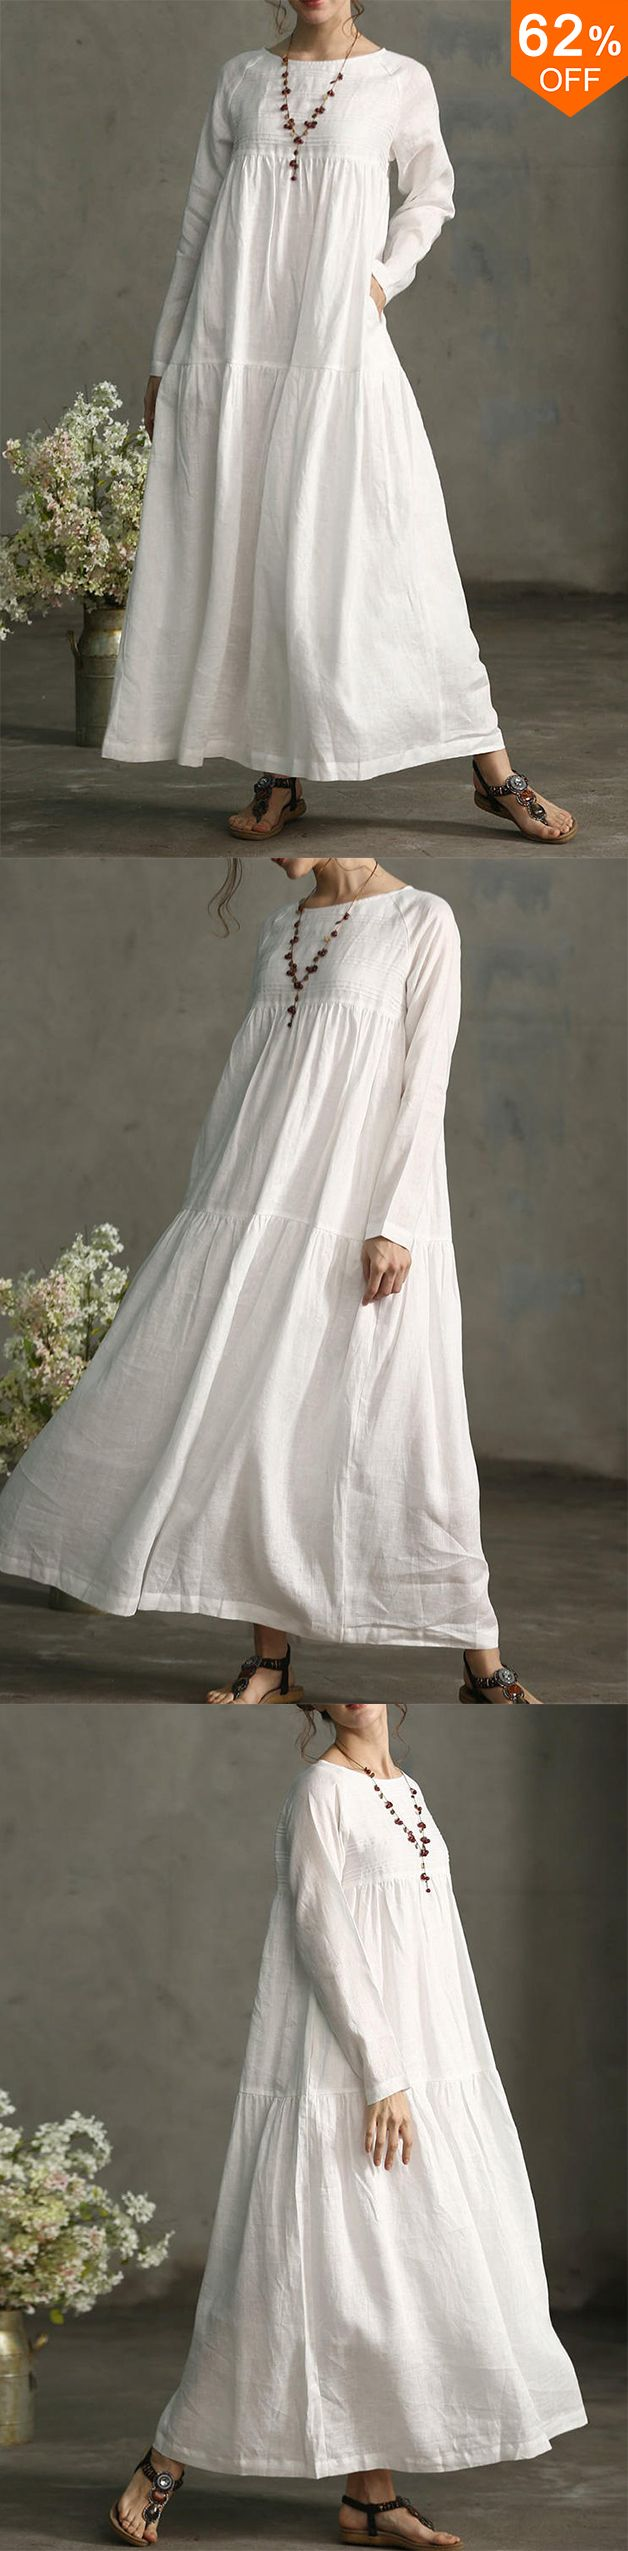 Lrecord Vintage Long Sleeve Pleated Maxi Cotton Dress Plus Size From Women S Clothing On Banggood Com Maxi Dress Cotton White Dresses For Women Fashion [ 2551 x 628 Pixel ]